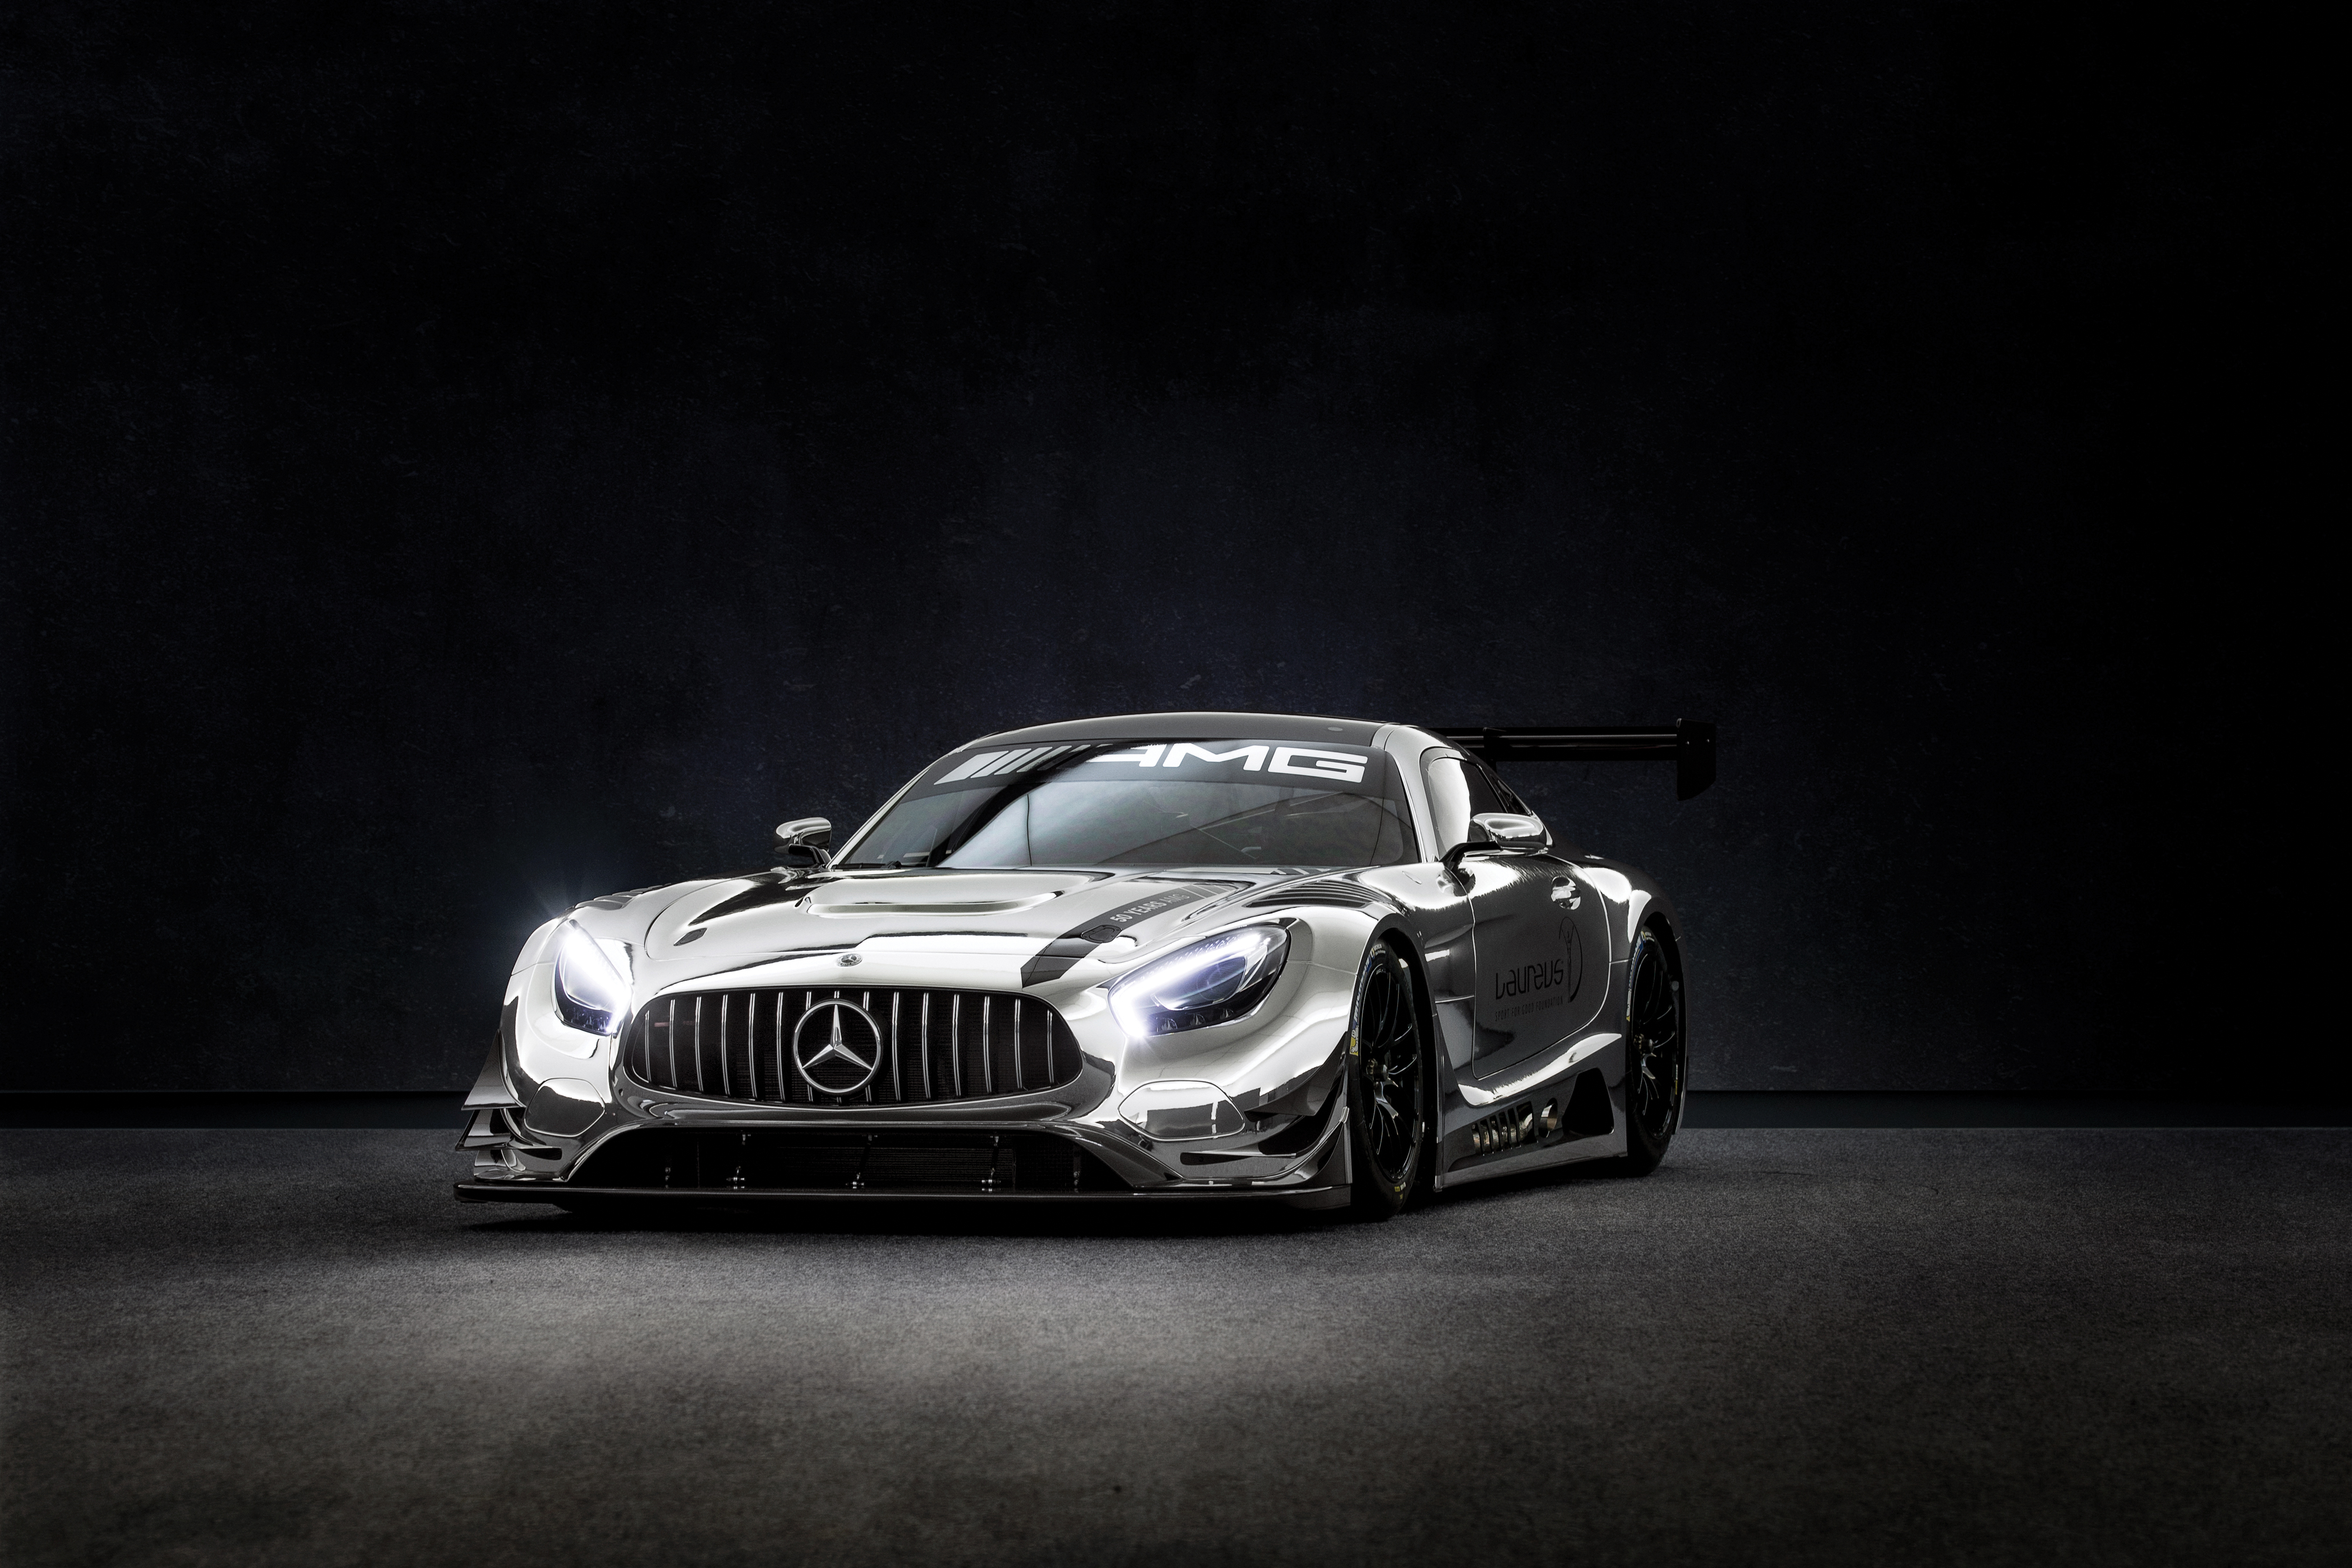 2017 Mercedes-AMG GT3 'Laureus', offered to benefit the Laureus Sport for Good Foundation (Courtesy of RM Sotheby's)